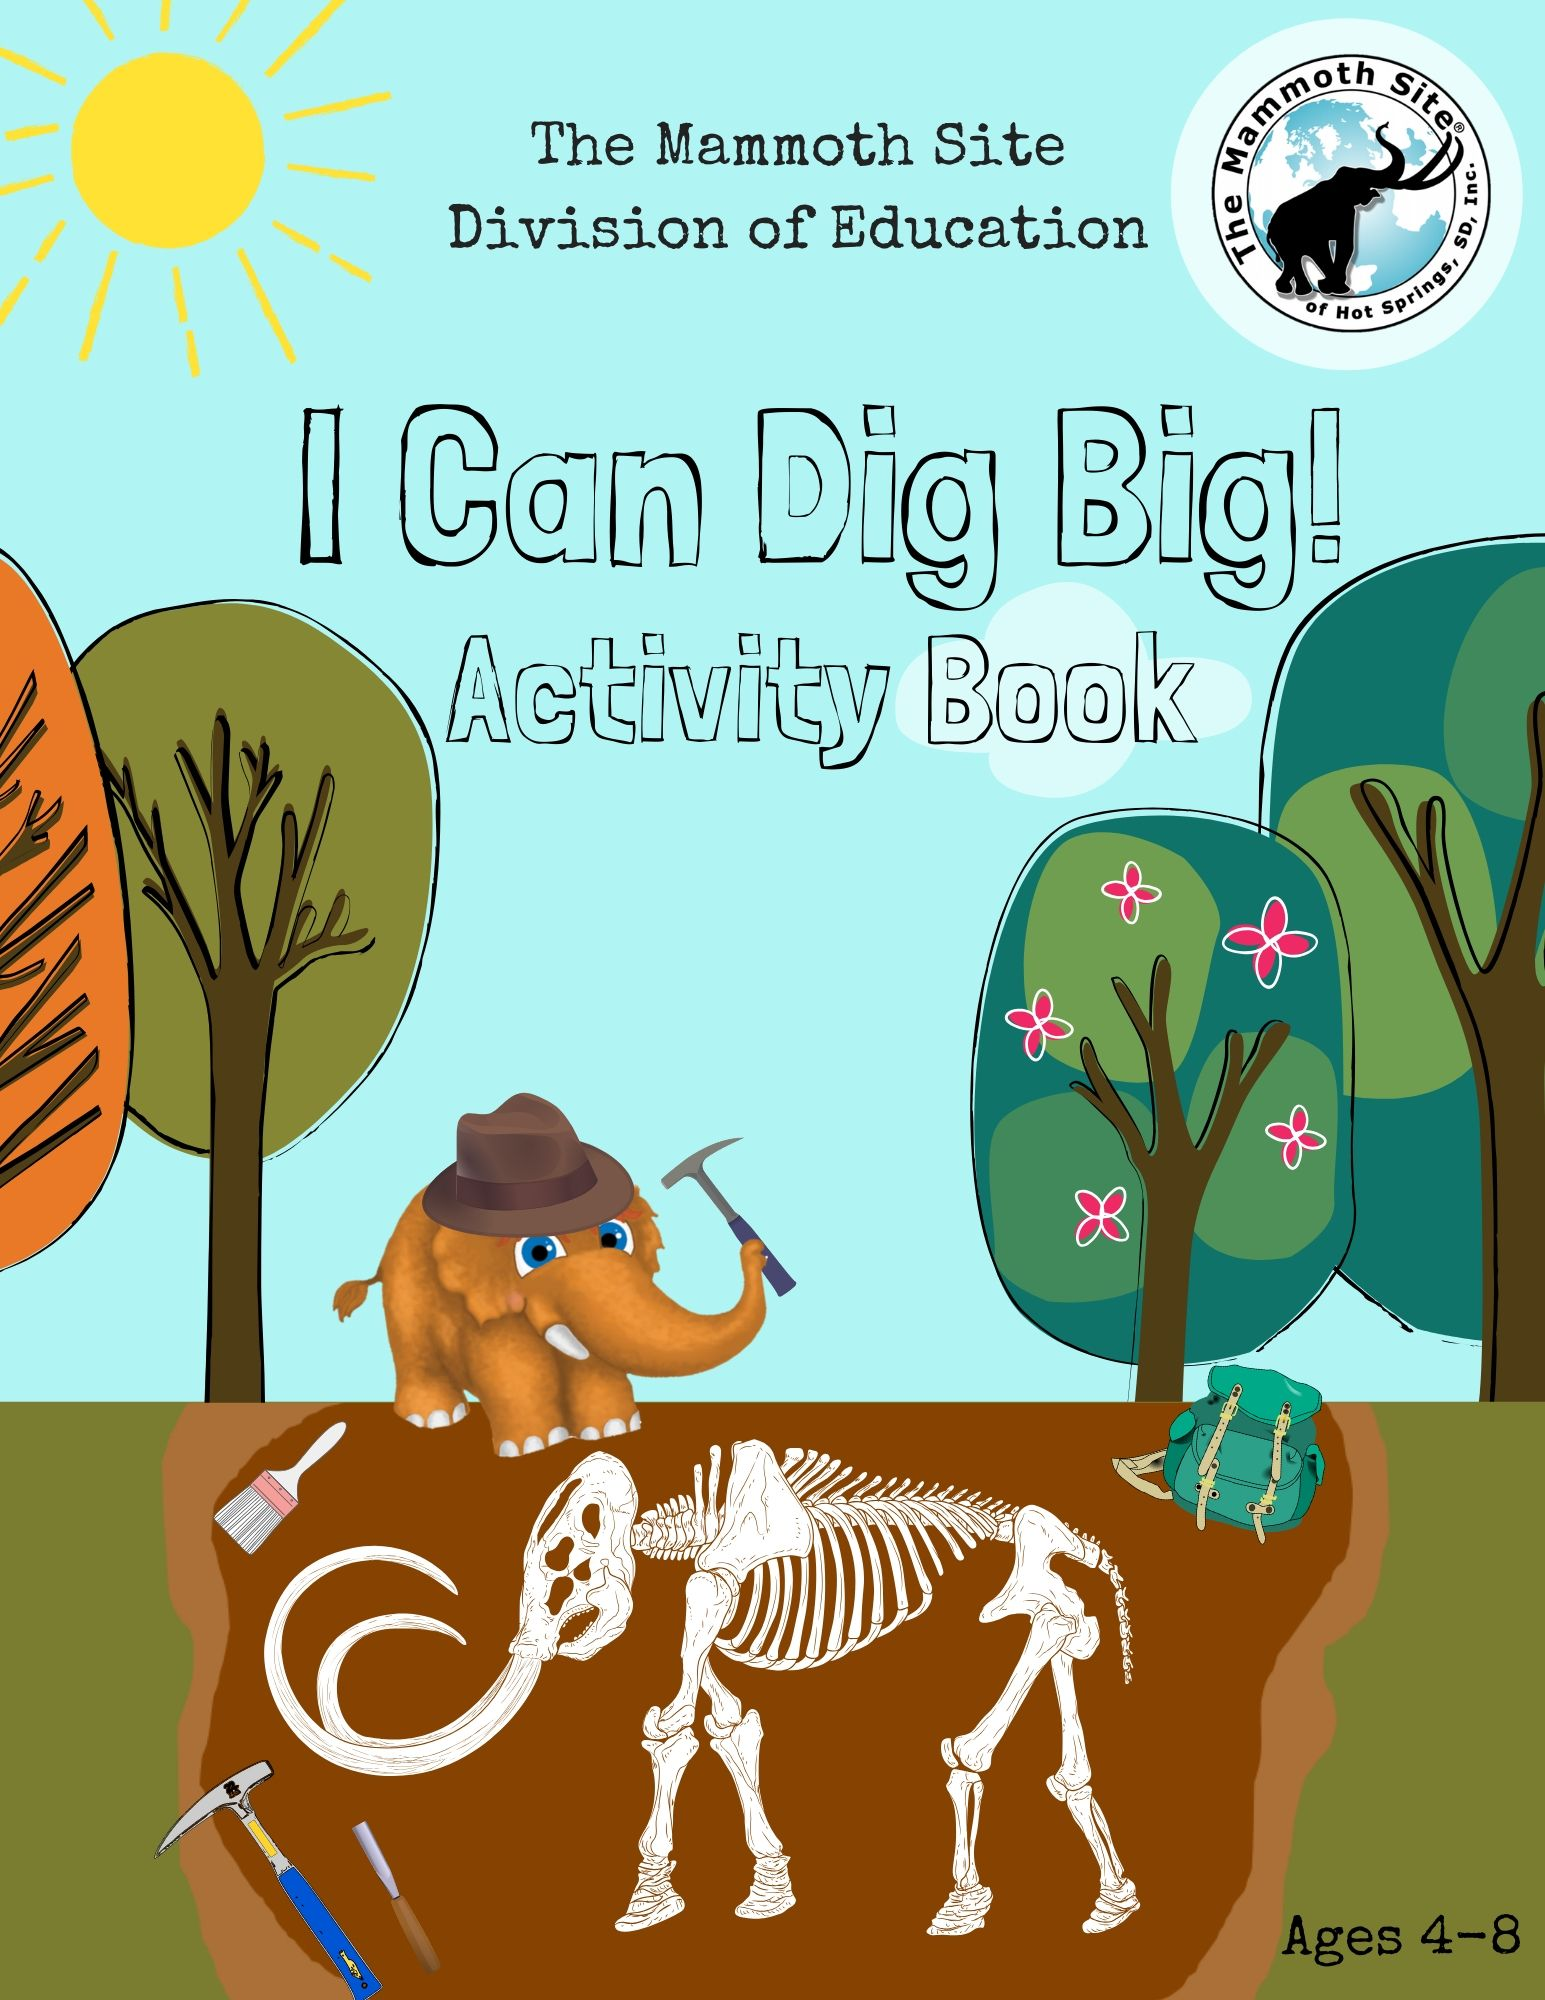 I Can Dig Big Activity Book